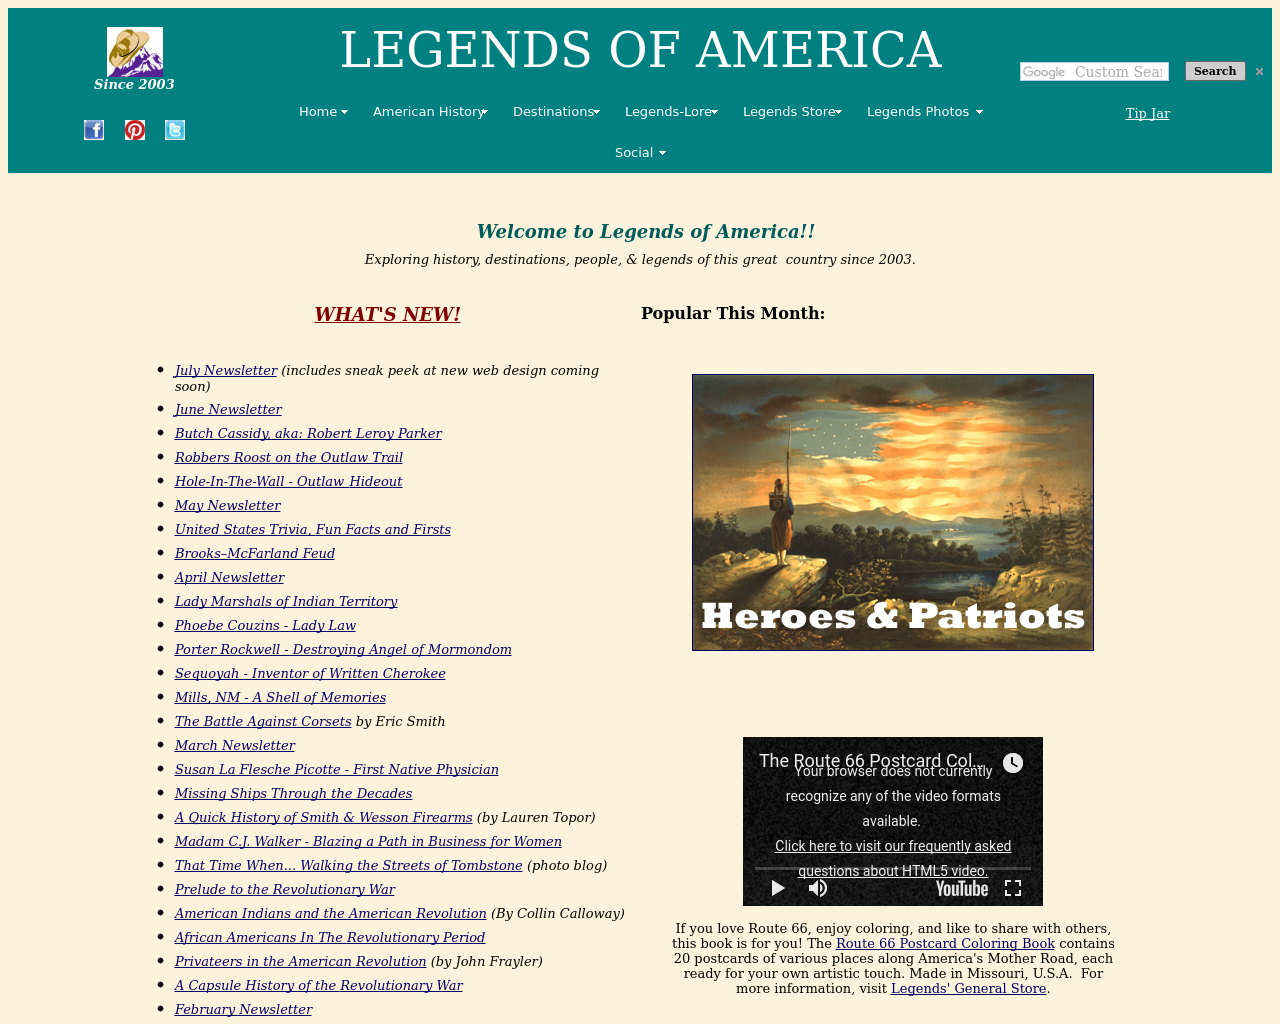 Legends-Of-America-Advertising-Reviews-Pricing